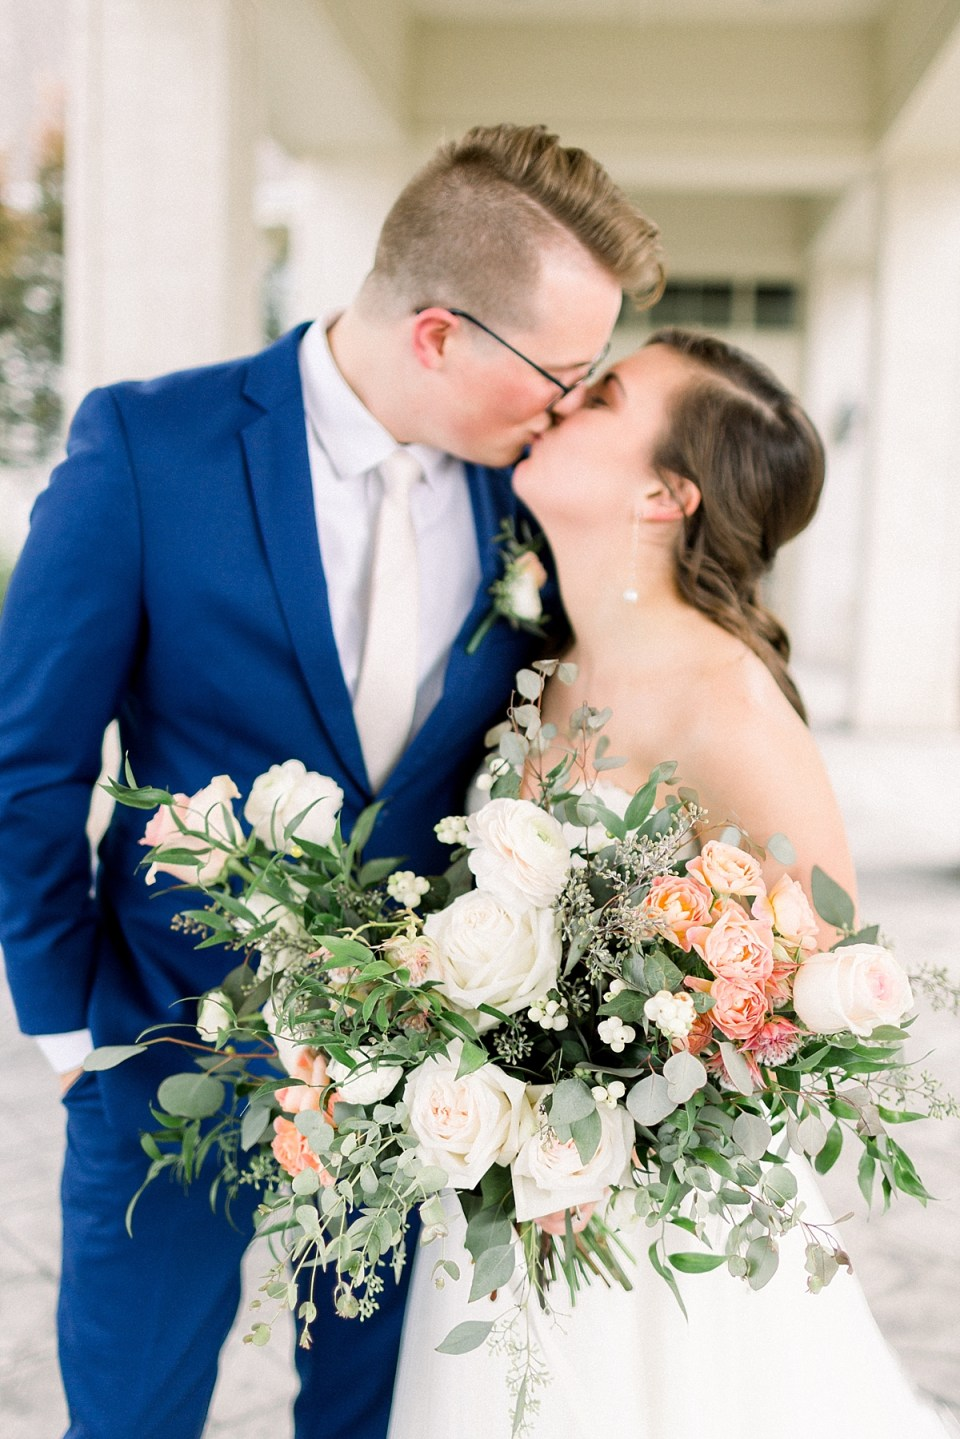 Arielle Peters Photography | Bride and groom kissing outside at The Bridgewater Club in Carmel, Indiana on wedding day.